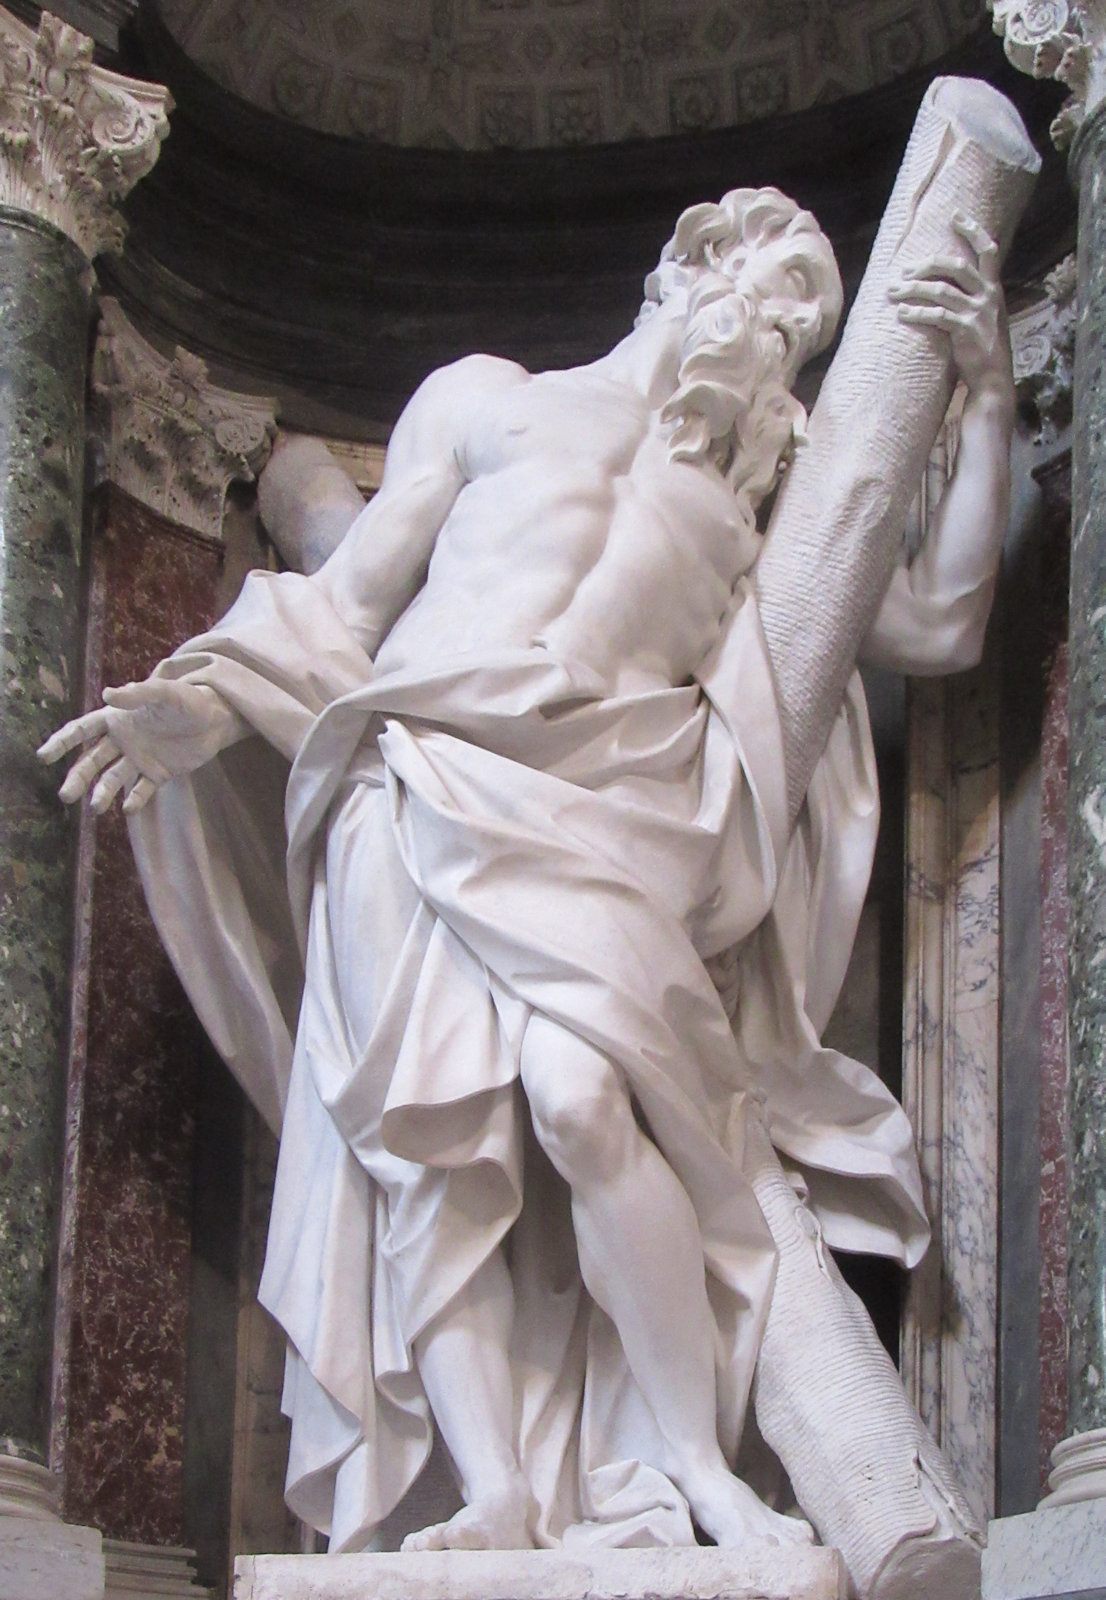 Camillo Rusconi: Statue, 1705 - 1711, in der Basilika San Giovanni in Laterano in Rom